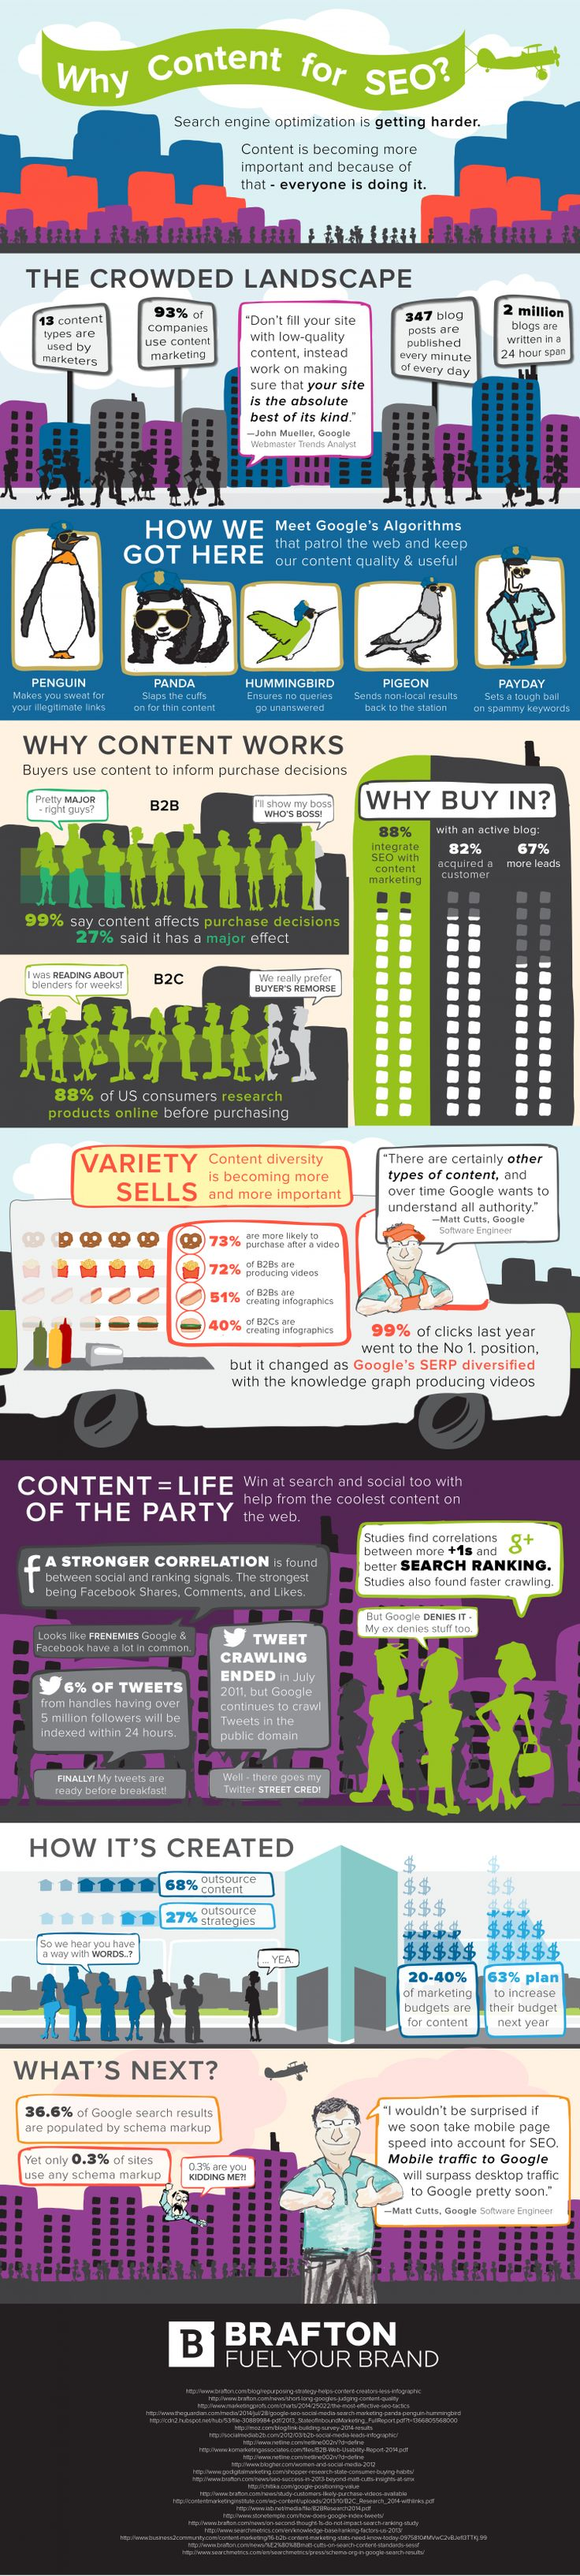 Brafton's Infographic: Why content for SEO (2015)